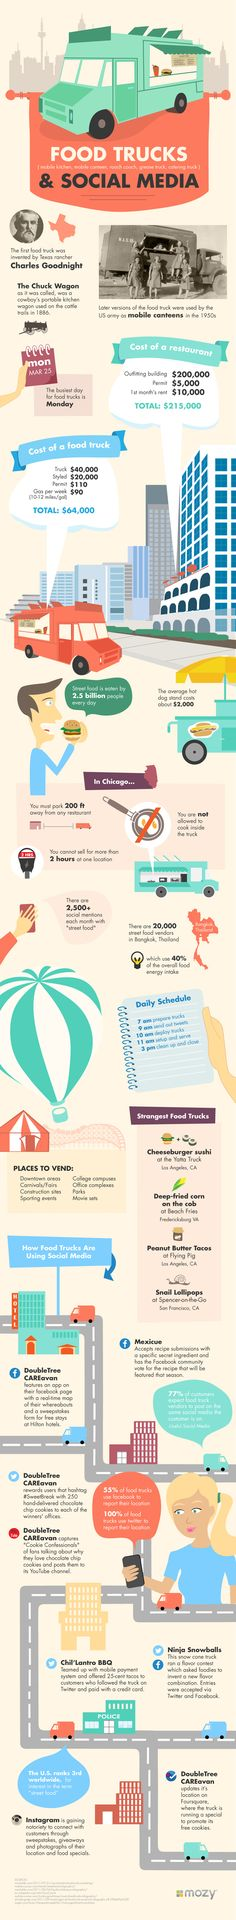 "Food trucks and carts have in recent years gone from being considered ""roach coaches"" to being a trendy new way to try interesting new cuisines, like Korean-TexMex fusion. Social media have helped fuel their rise, letting city-dwellers know where they can find their favorite truck on a given day. Data backup provider Mozy has put together an infographic take on the link between food trucks and social media."